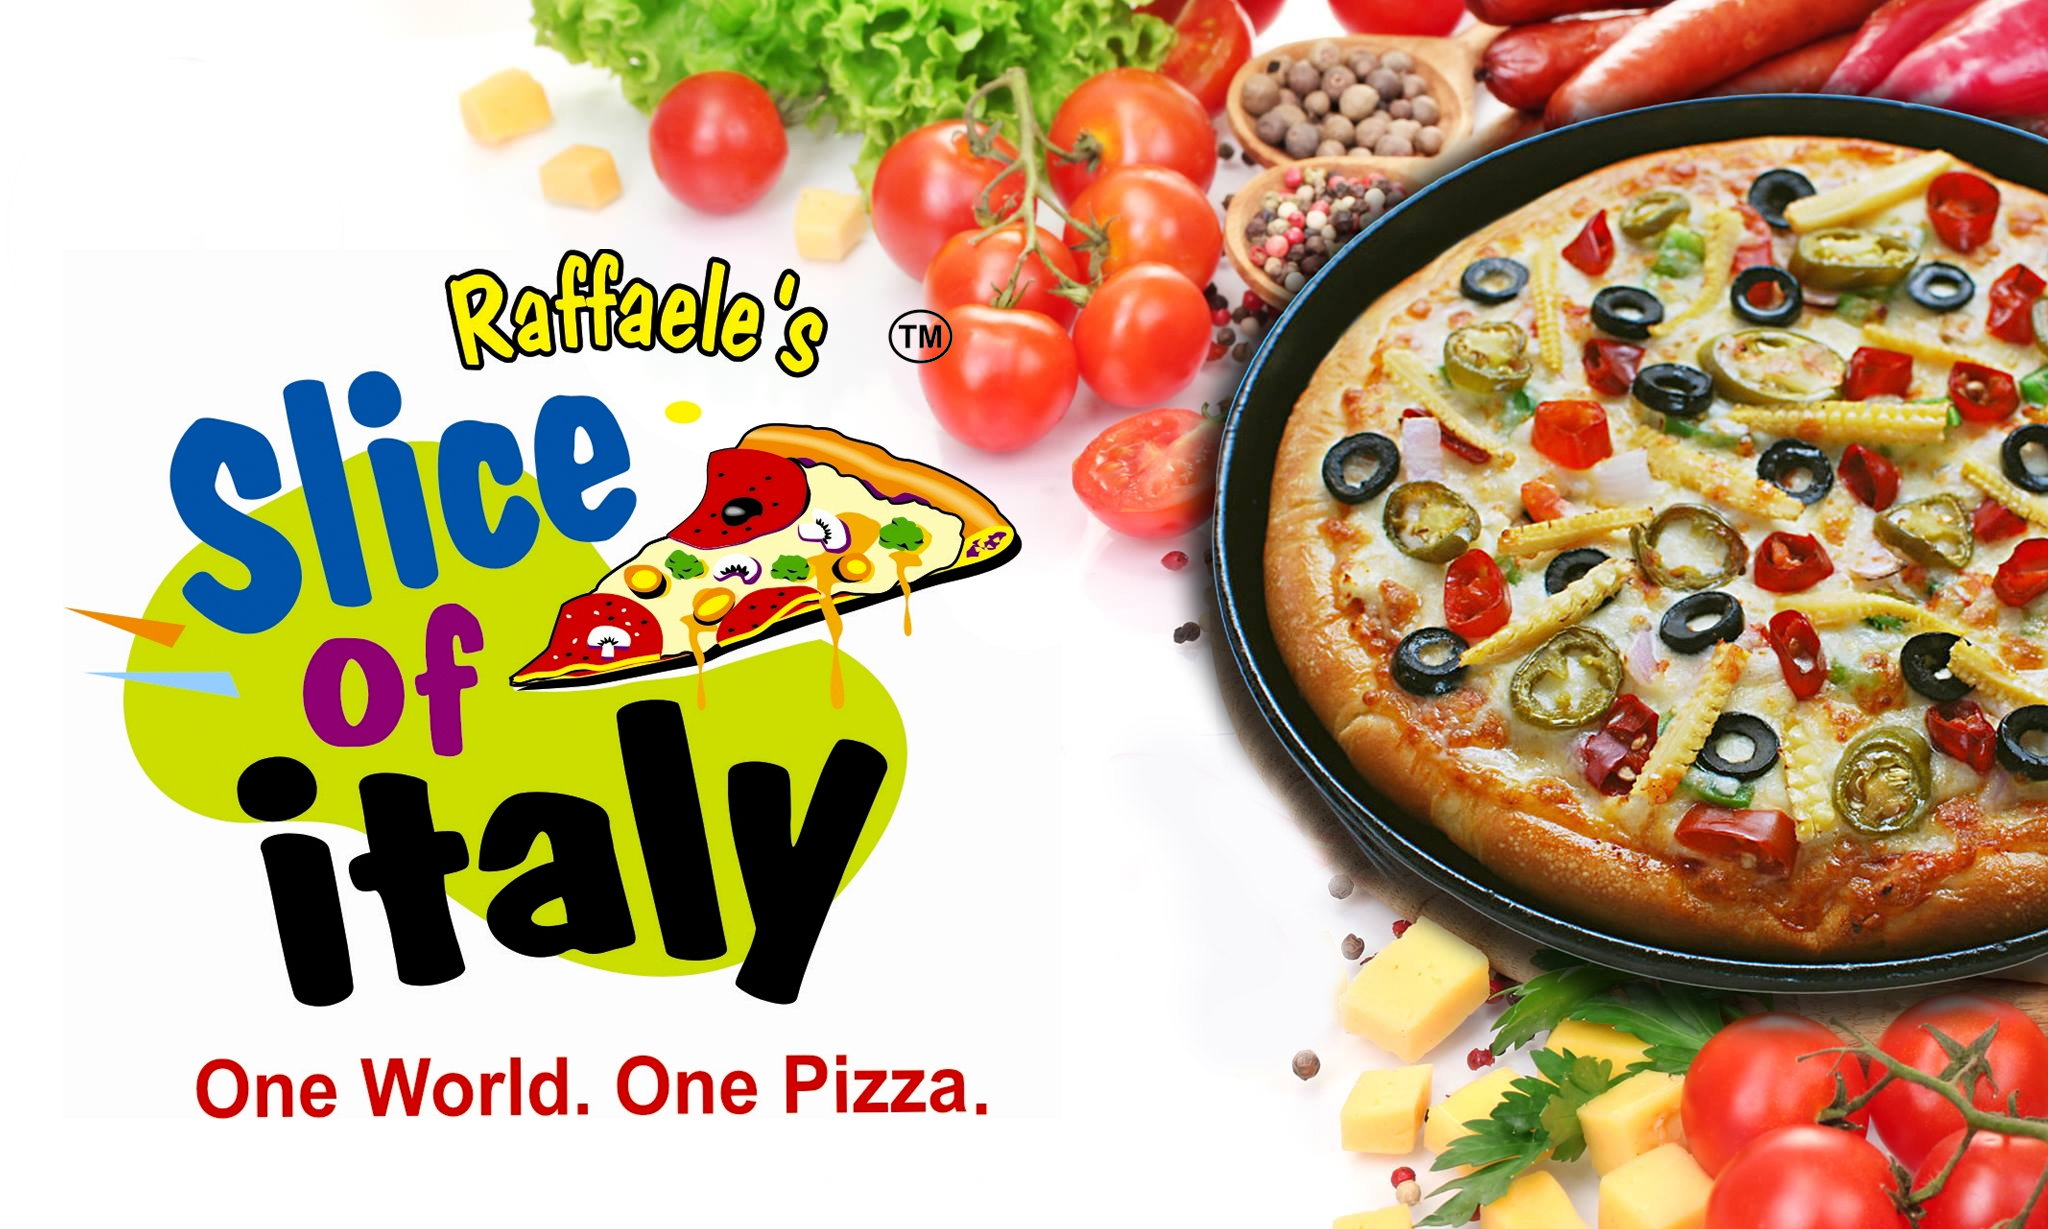 Slice of Italy @ 36% off